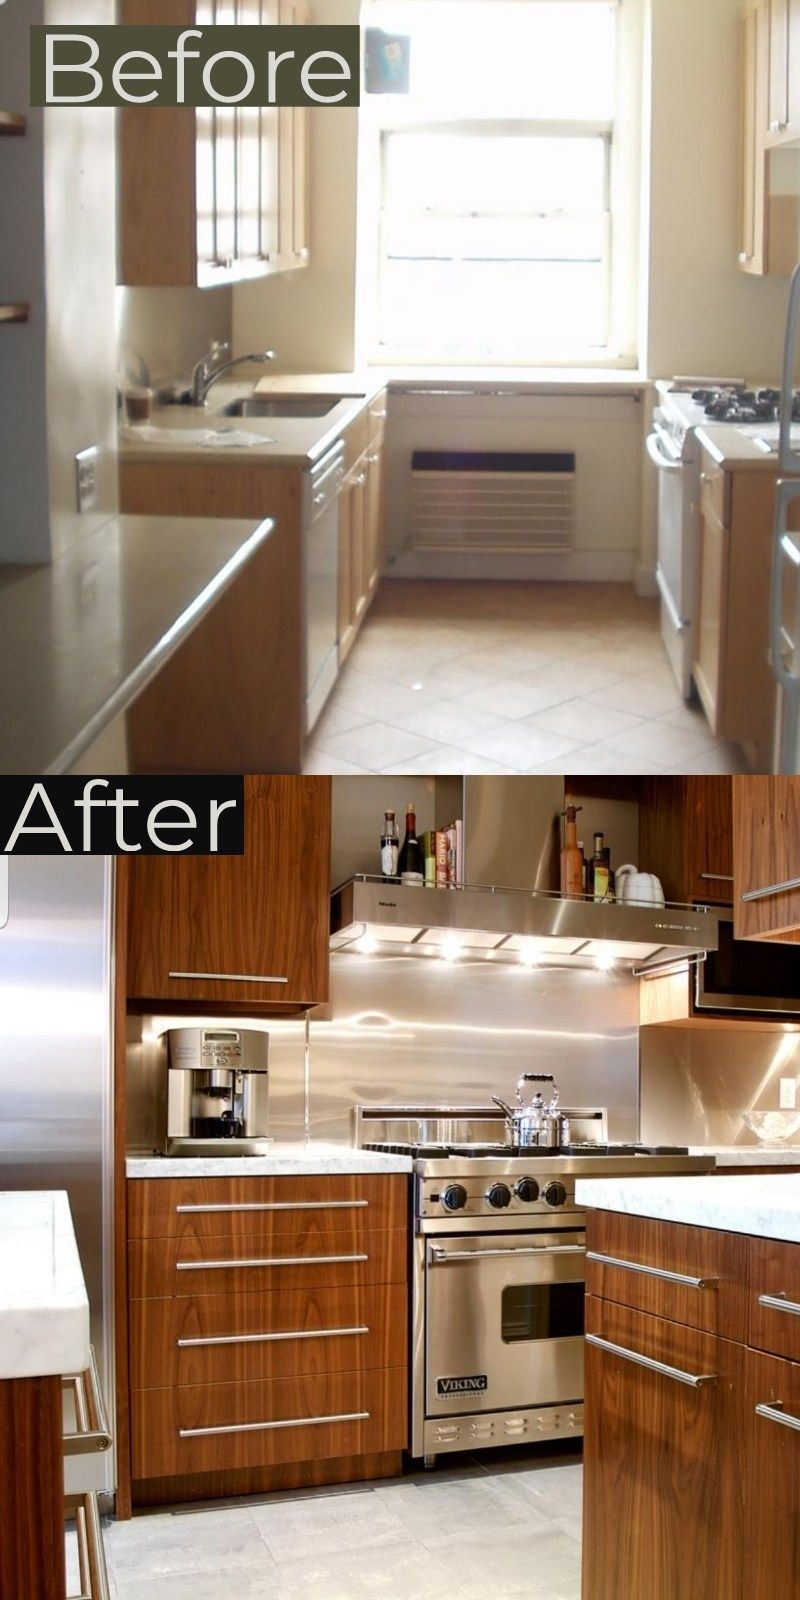 17+ Galley Kitchen Remodel Before And After Ideas 2019